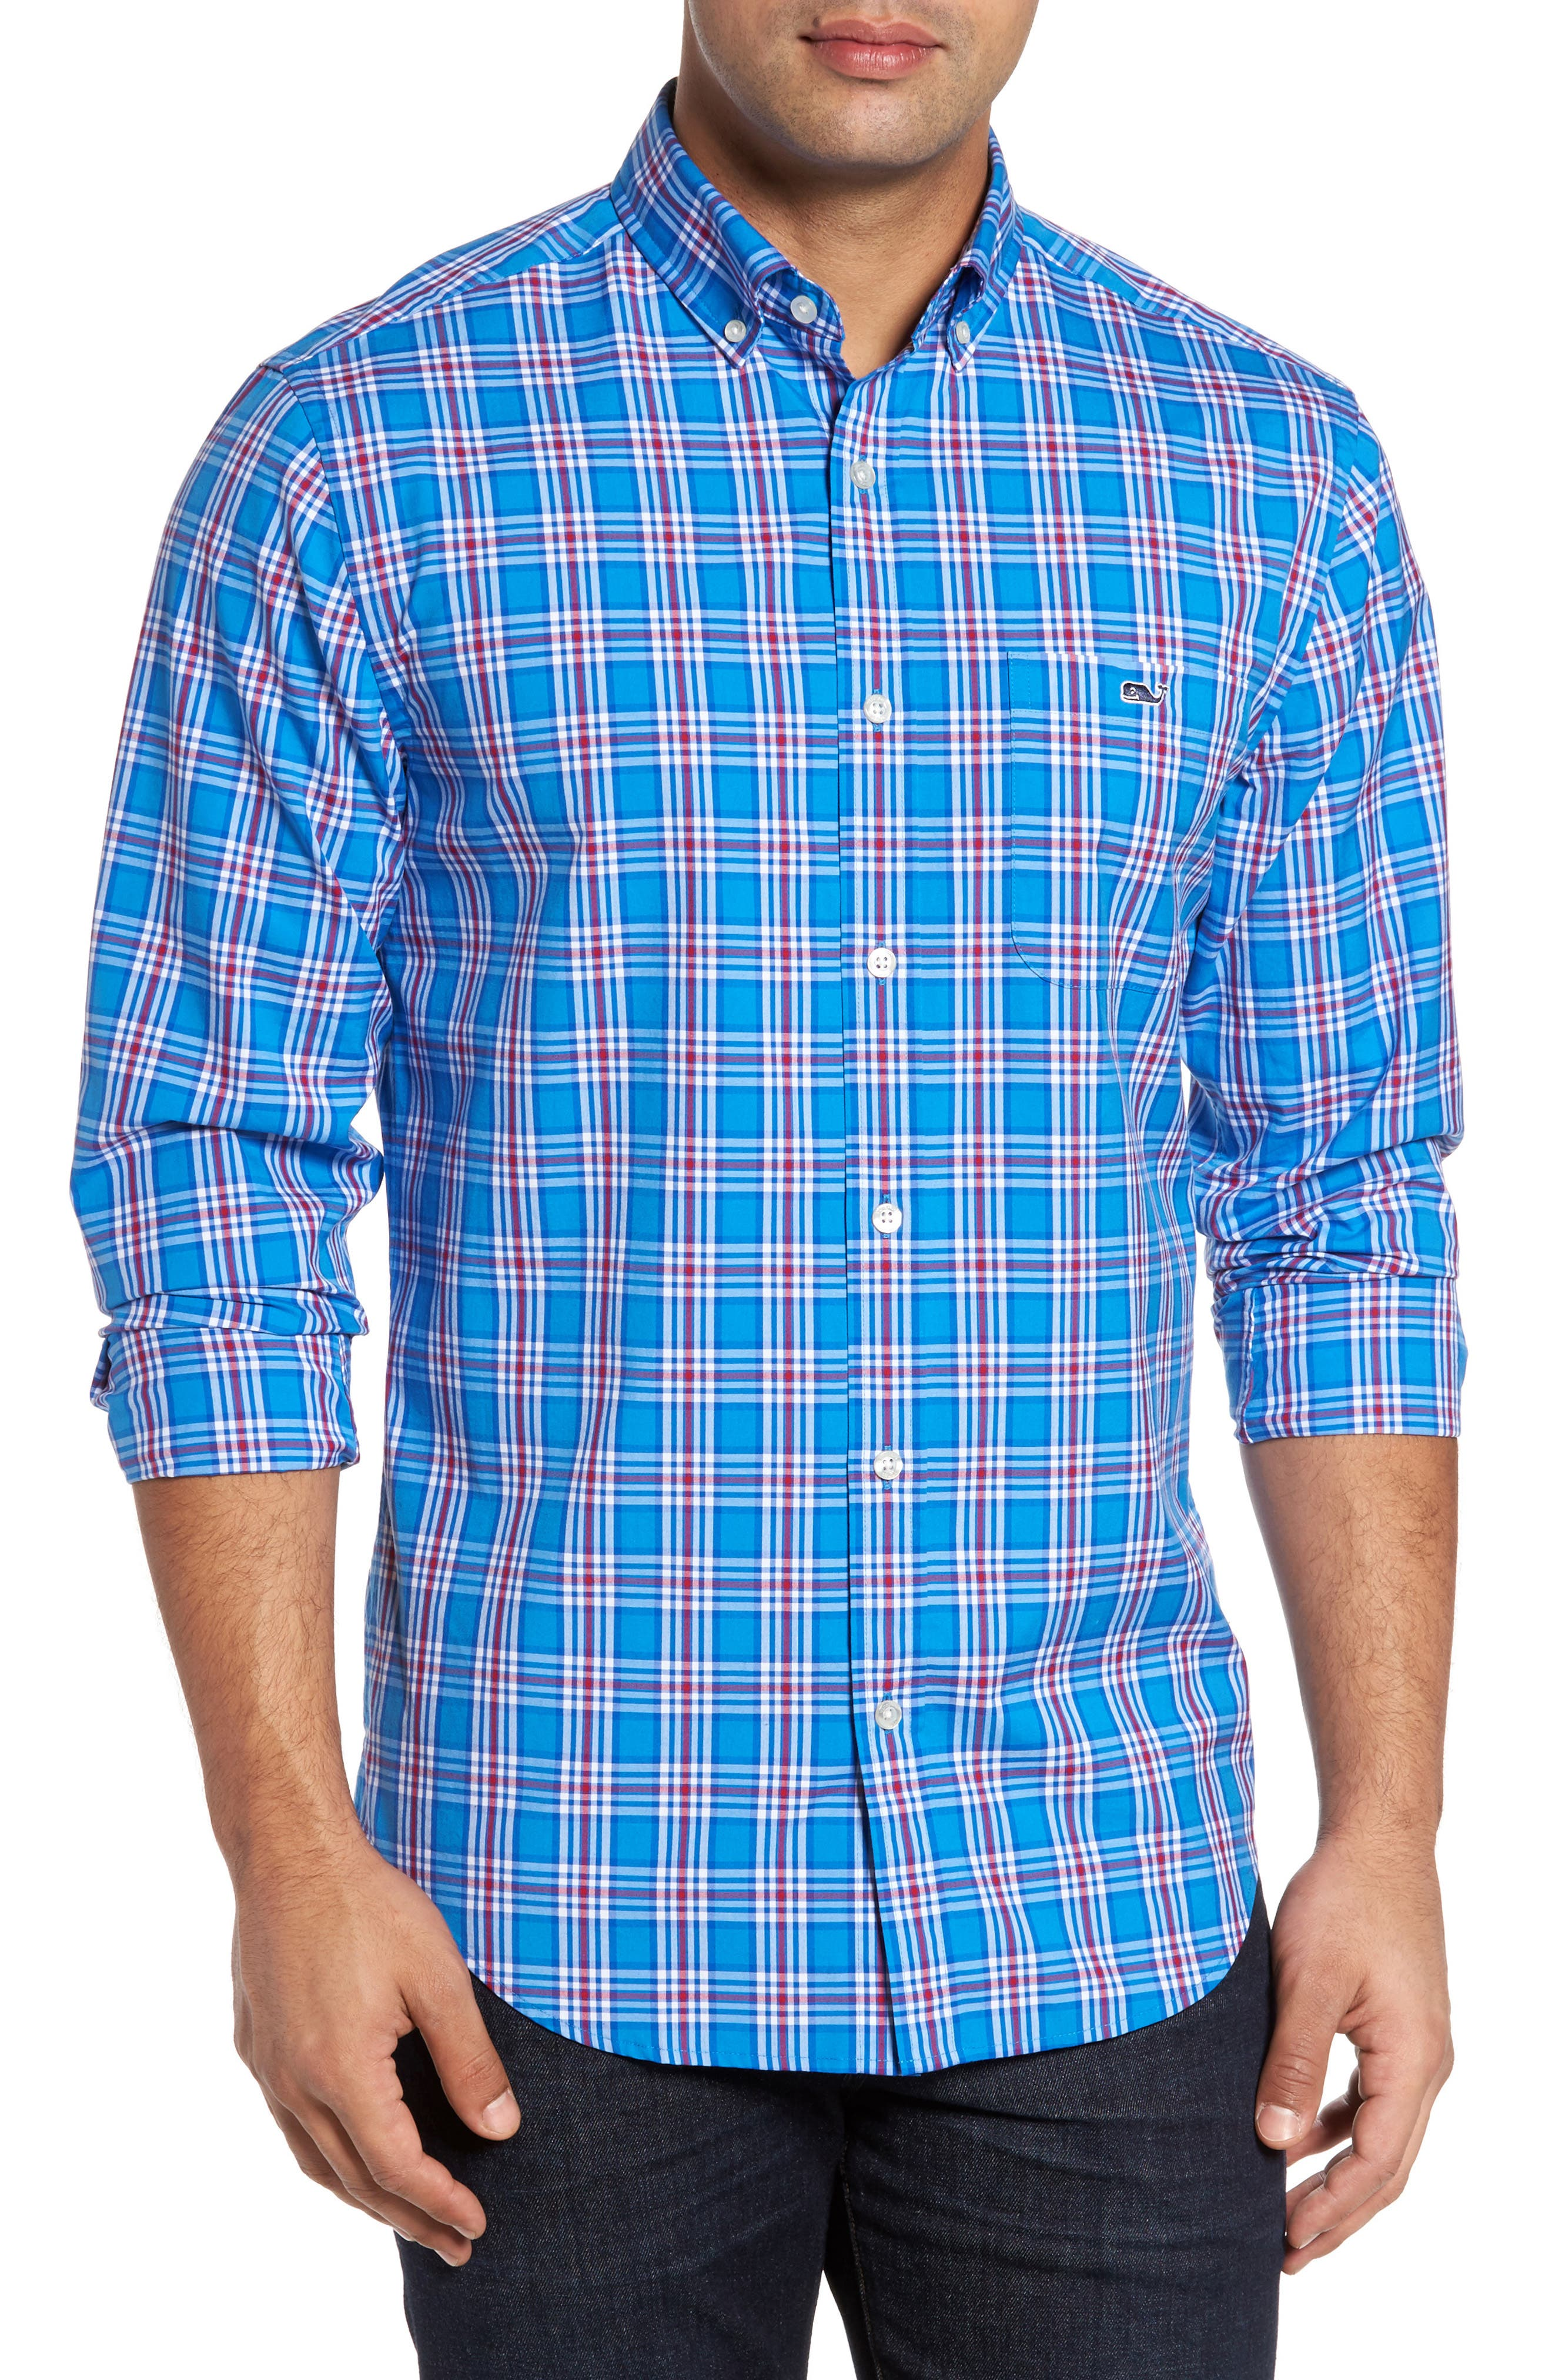 Tucker Chandler Pond Classic Fit Plaid Sport Shirt,                             Main thumbnail 1, color,                             400